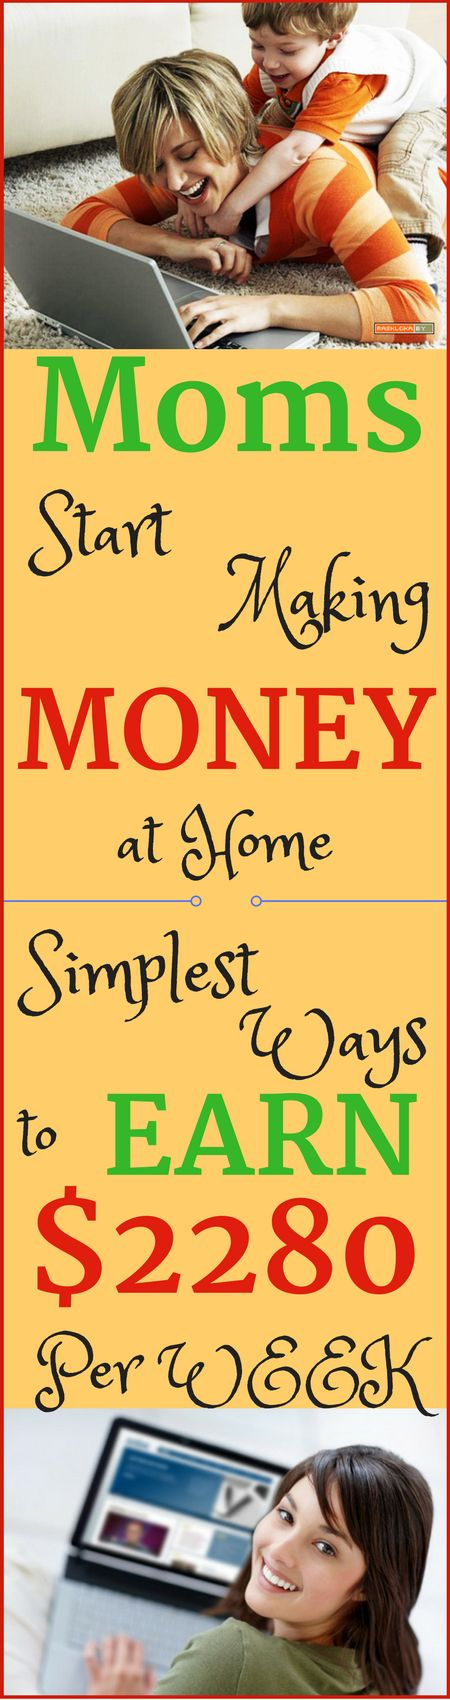 Make money online moms in 2017. Best ways to earn passive income online from home. Start making $2280 per week with genuine methods. Click to see how >>>